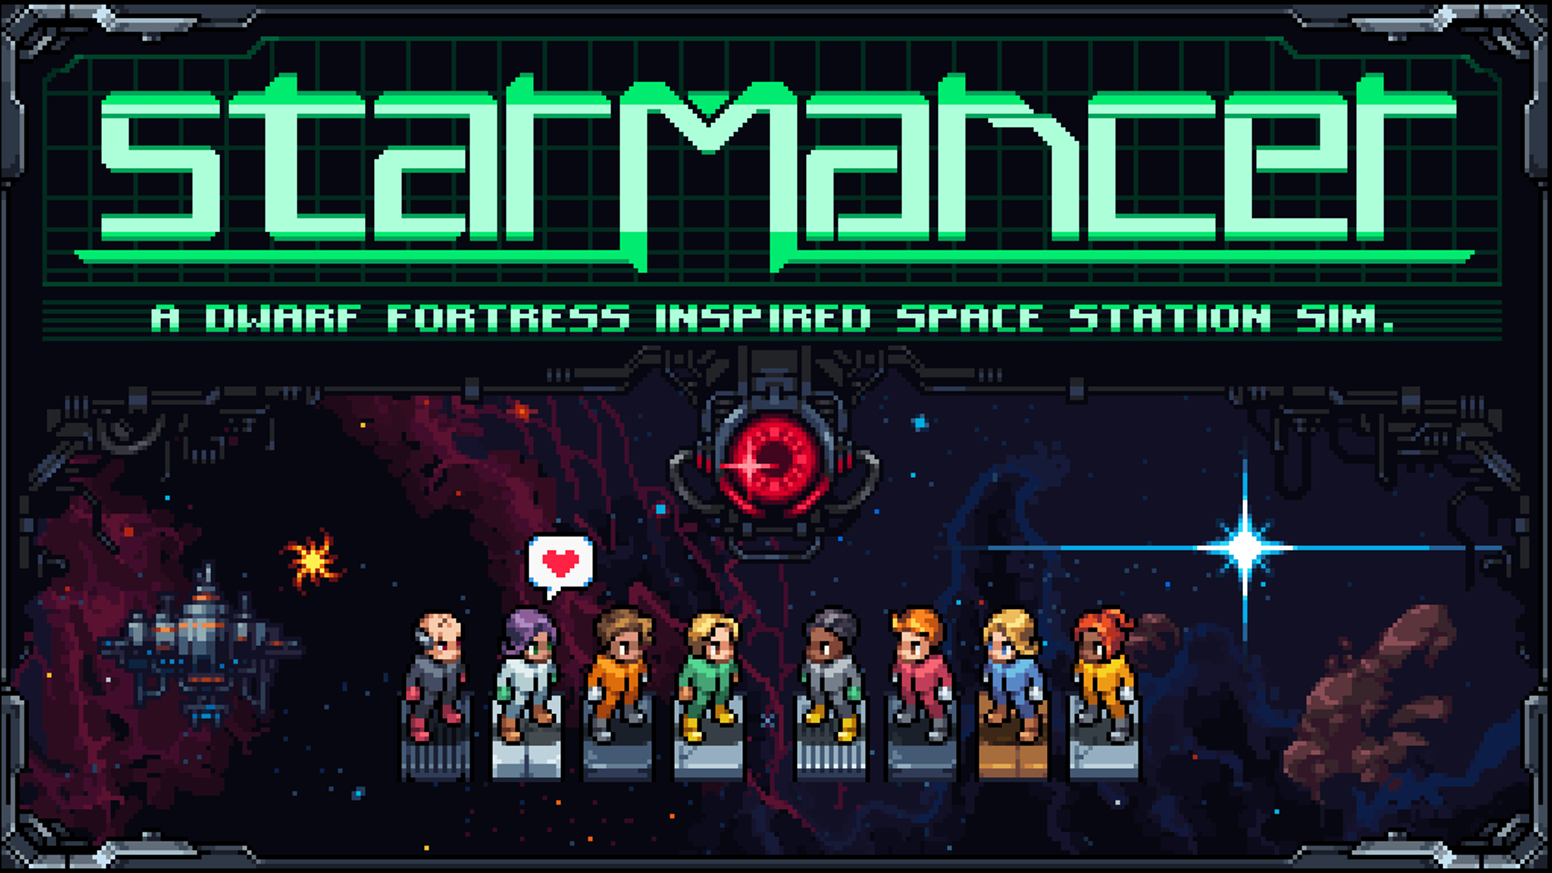 Dwarf Fortress Inspired Space Station Sim